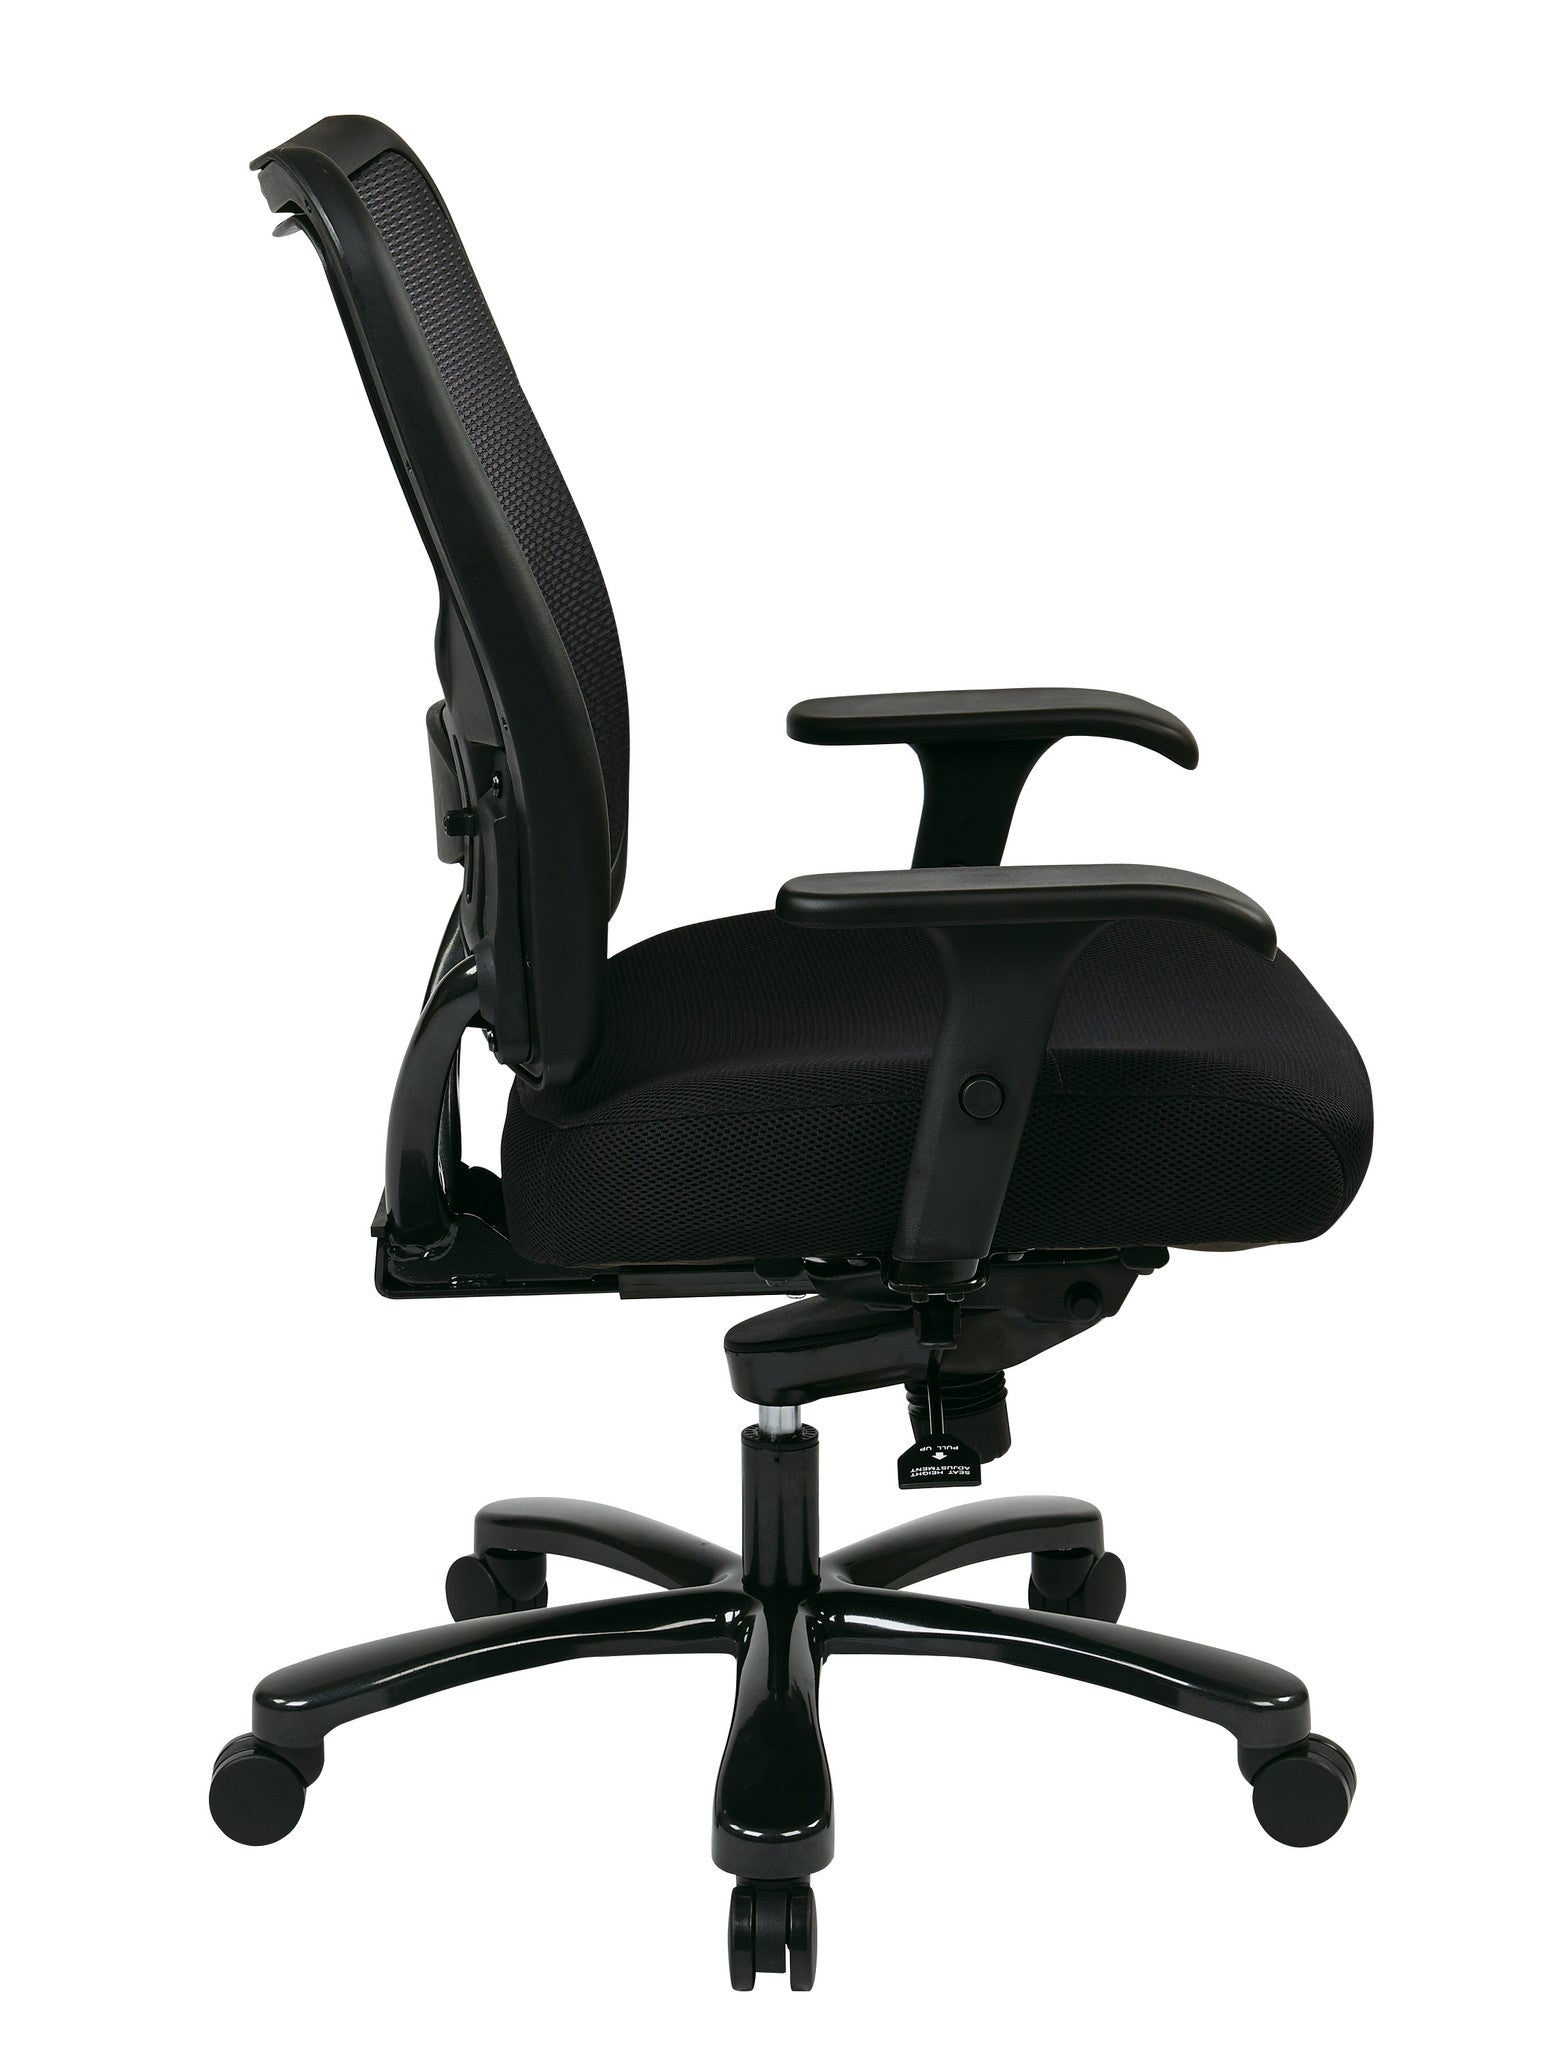 Office Star Space Seating Double AirGrid  Big   Tall Back and Black  Mesh Seat Ergonomic  Ergonomic Chairs for Standing Desks   Ergo Health Store. Office Star Ergonomic Chair. Home Design Ideas